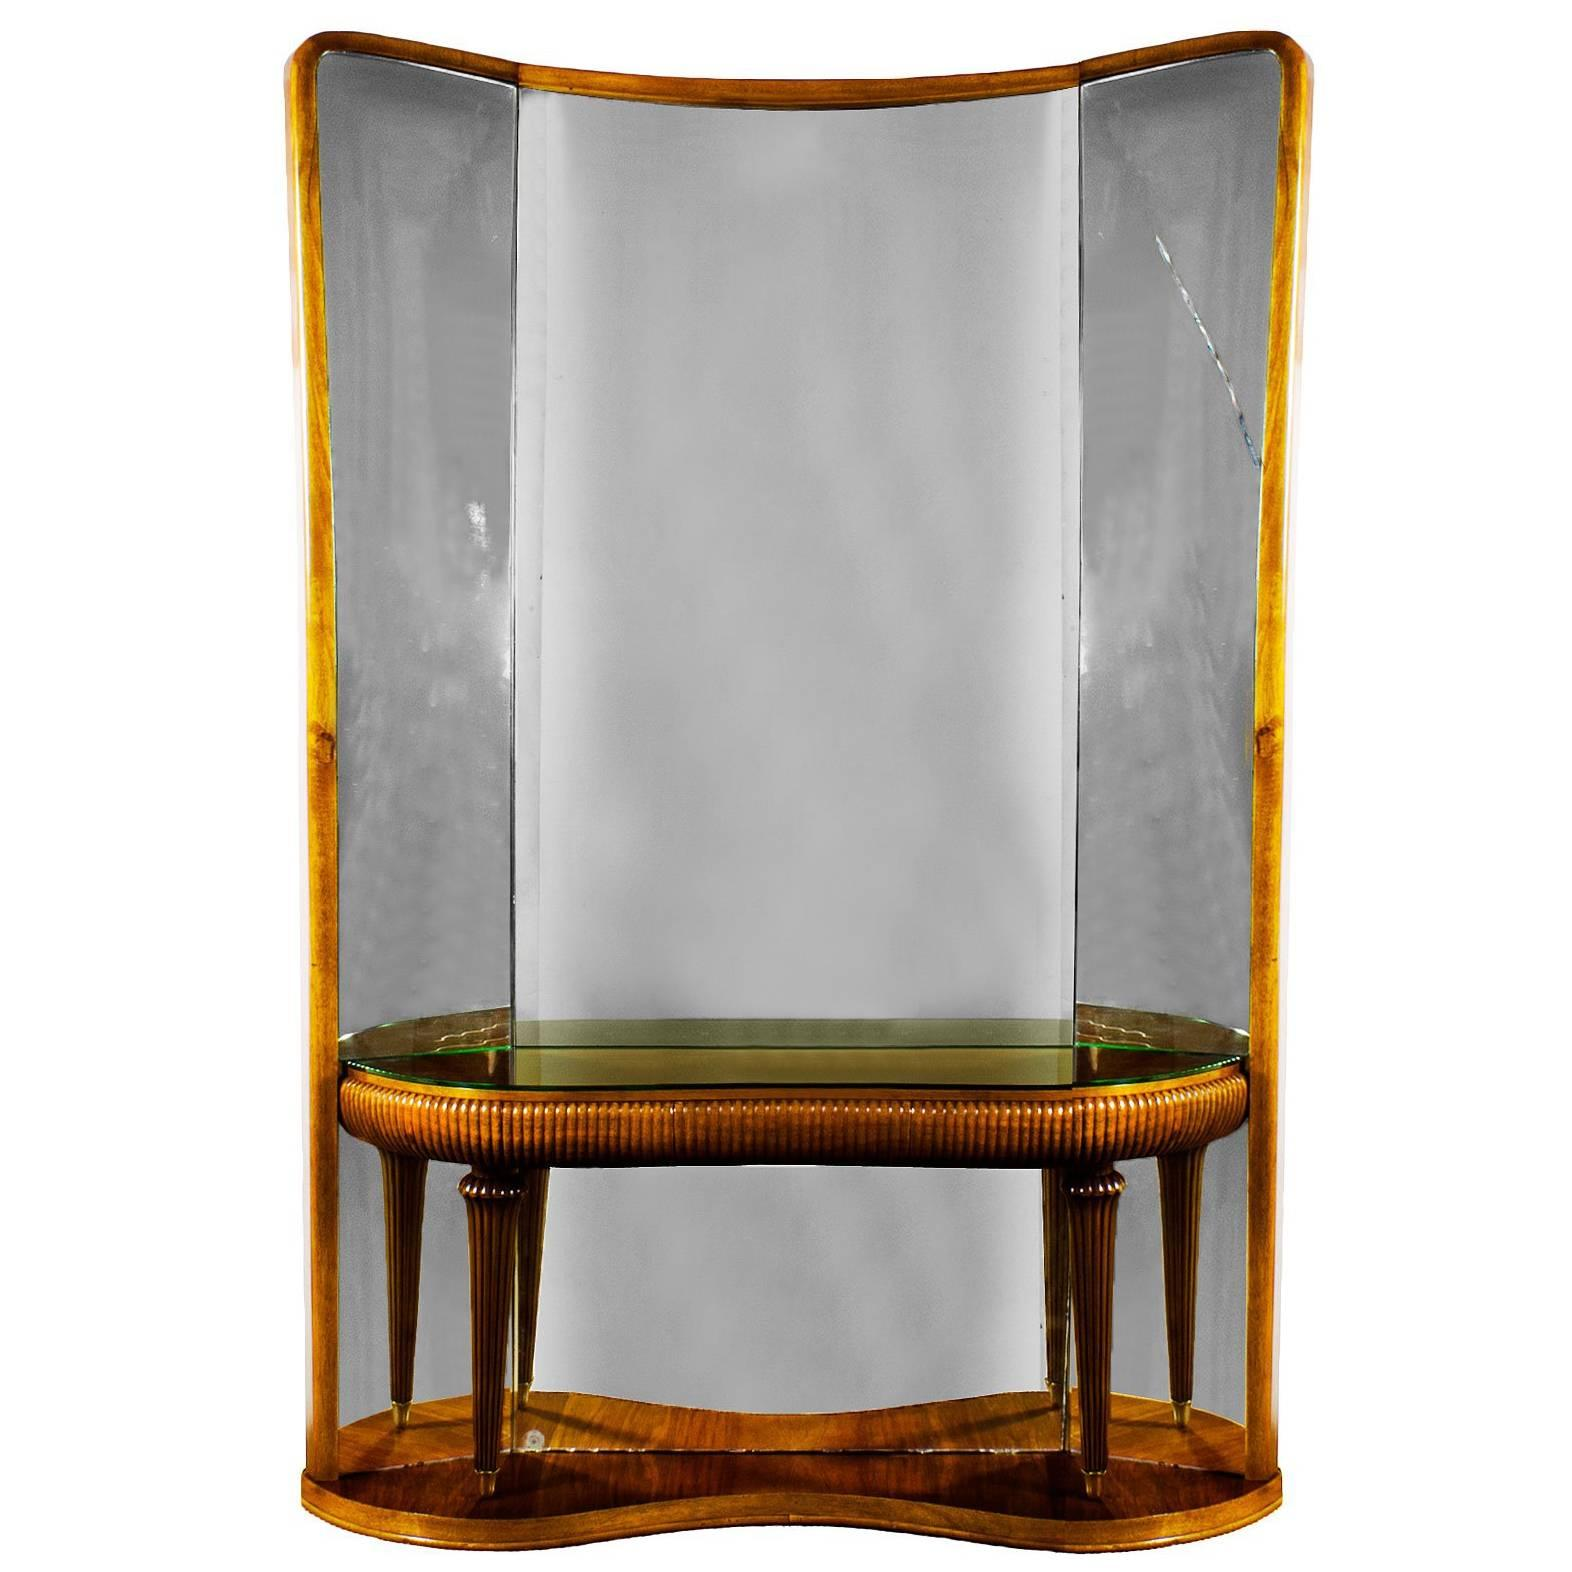 1940s Console-Mirror, Walnut, Brass, Original Mirrors, Fluted Stands, Italy